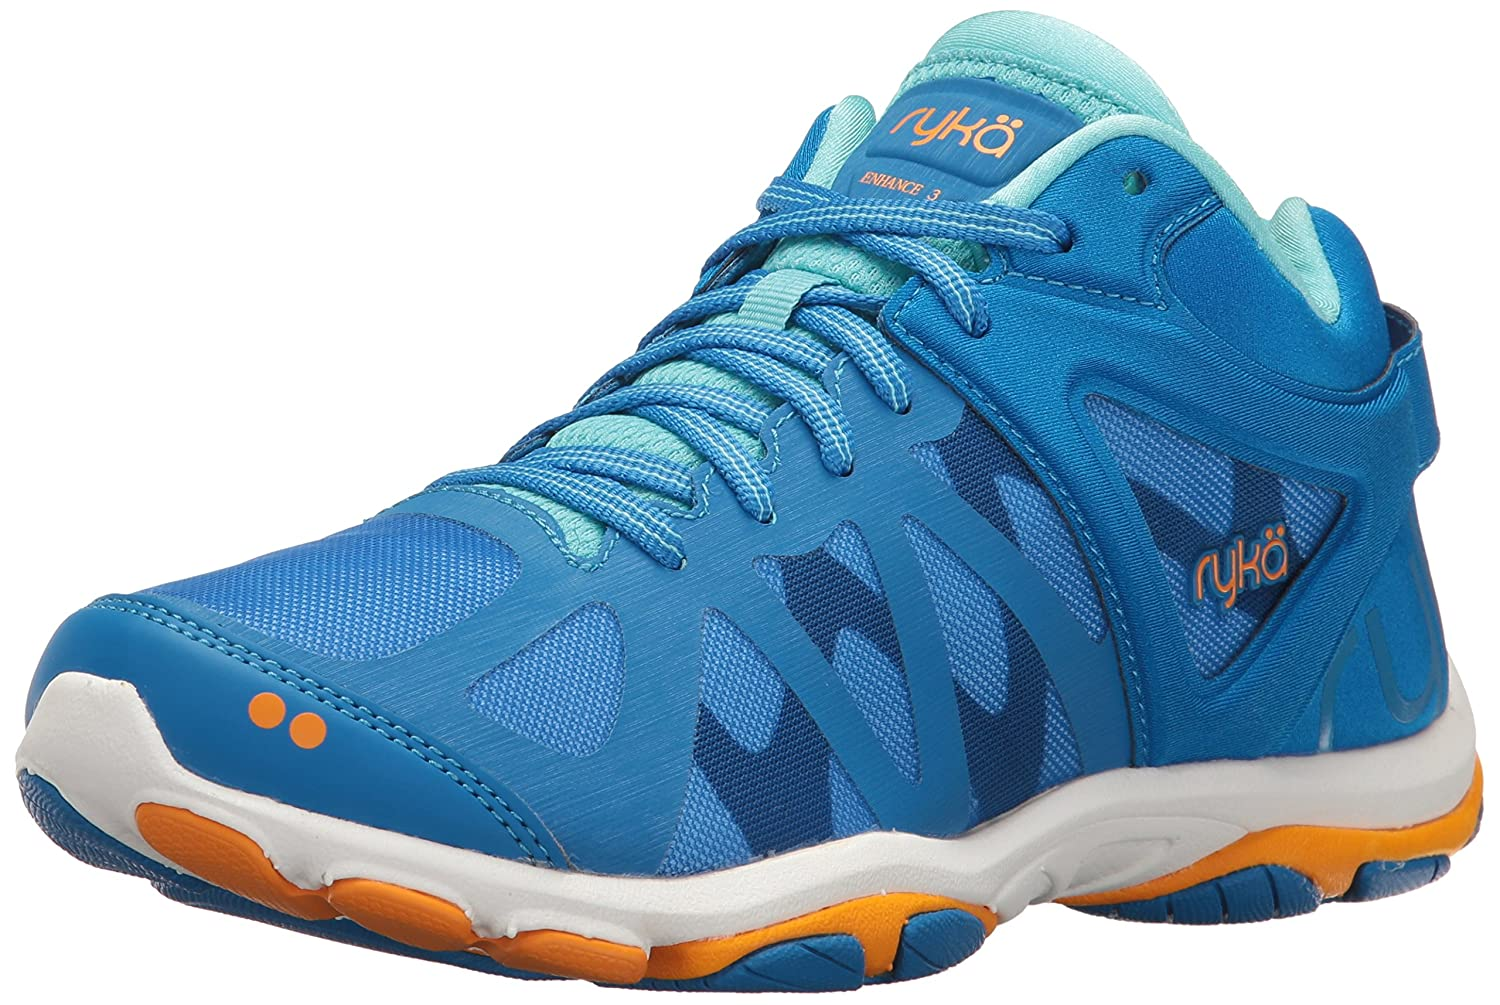 Ryka Women's Enhance 3 Cross-Trainer Shoe B01KVZ9XXS 9.5 B(M) US|Blue/Orange